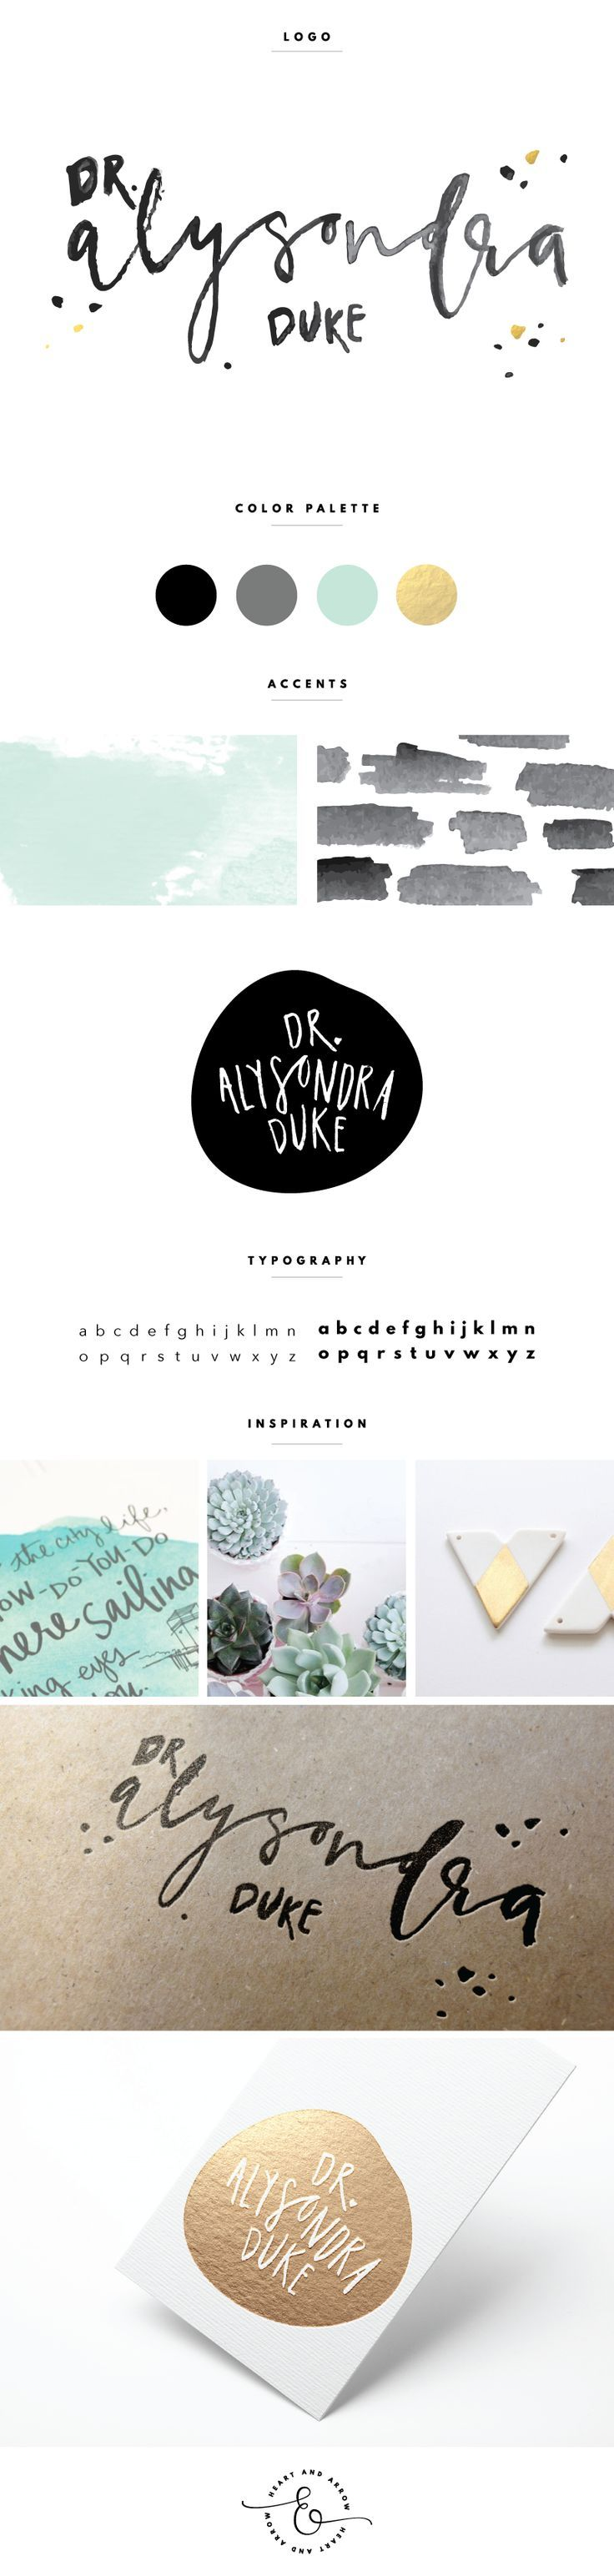 Hand lettered logo for Dr. Alysondra Duke